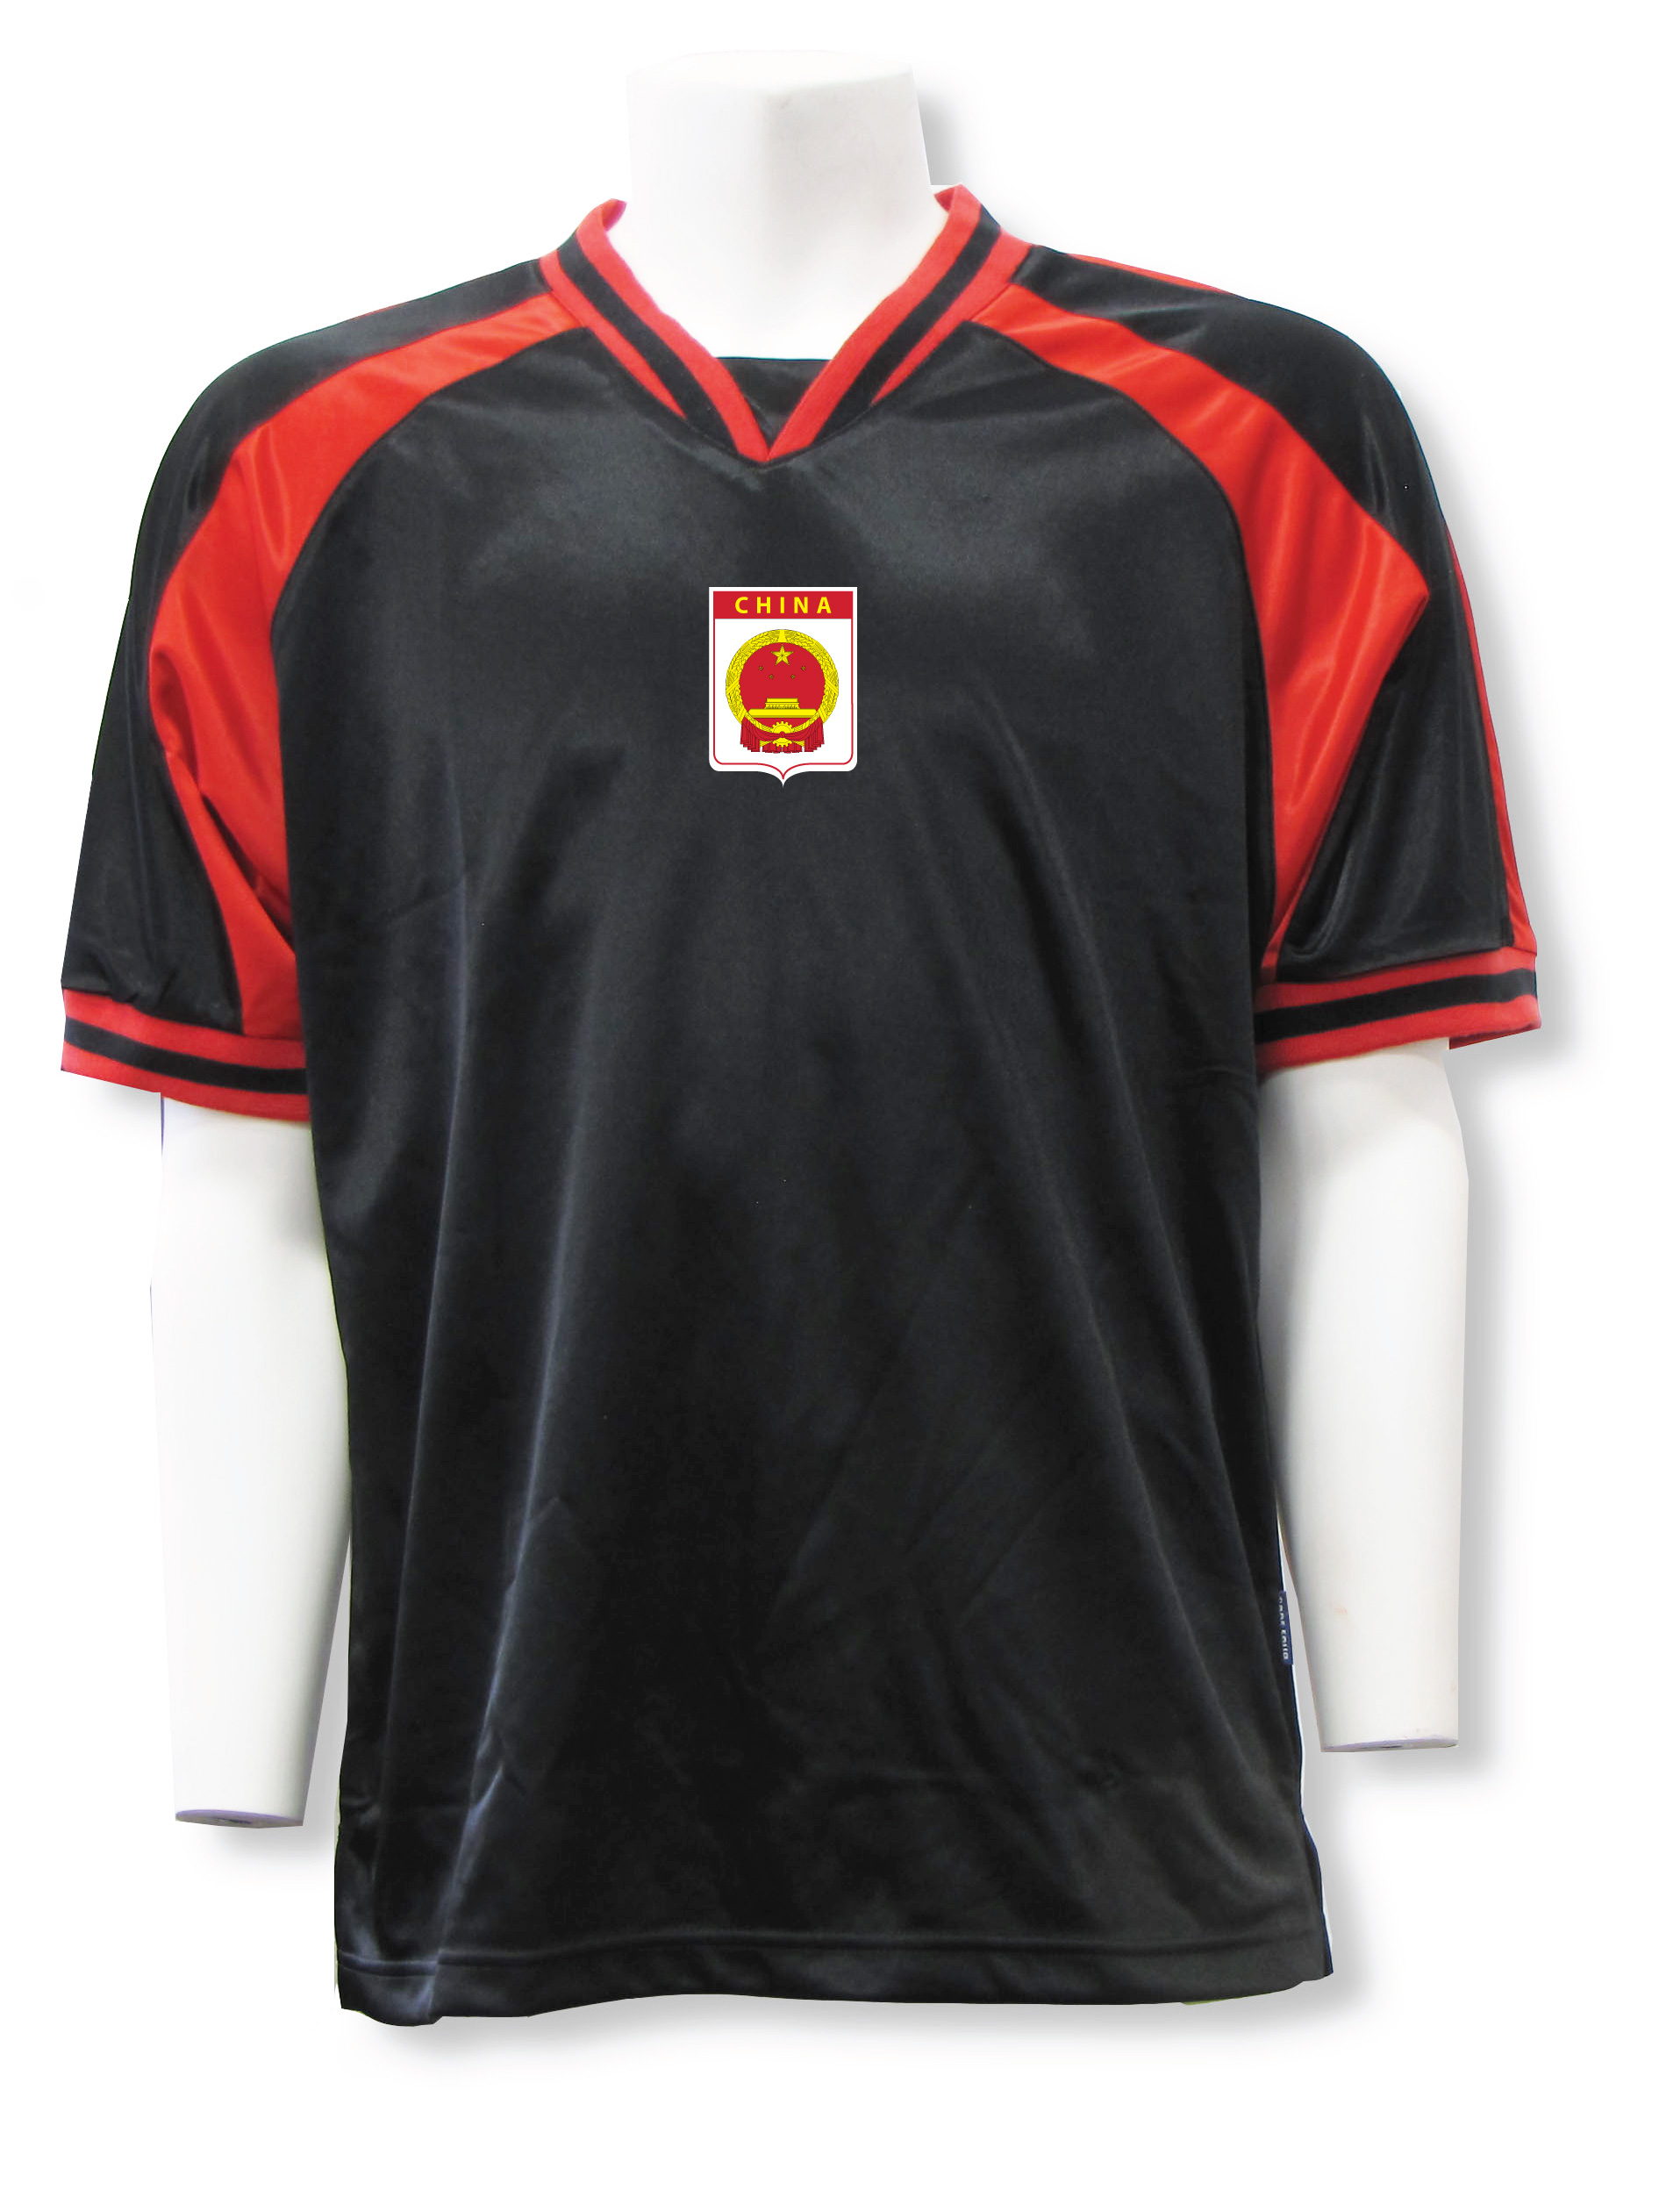 China soccer jersey in black/red Spitfire